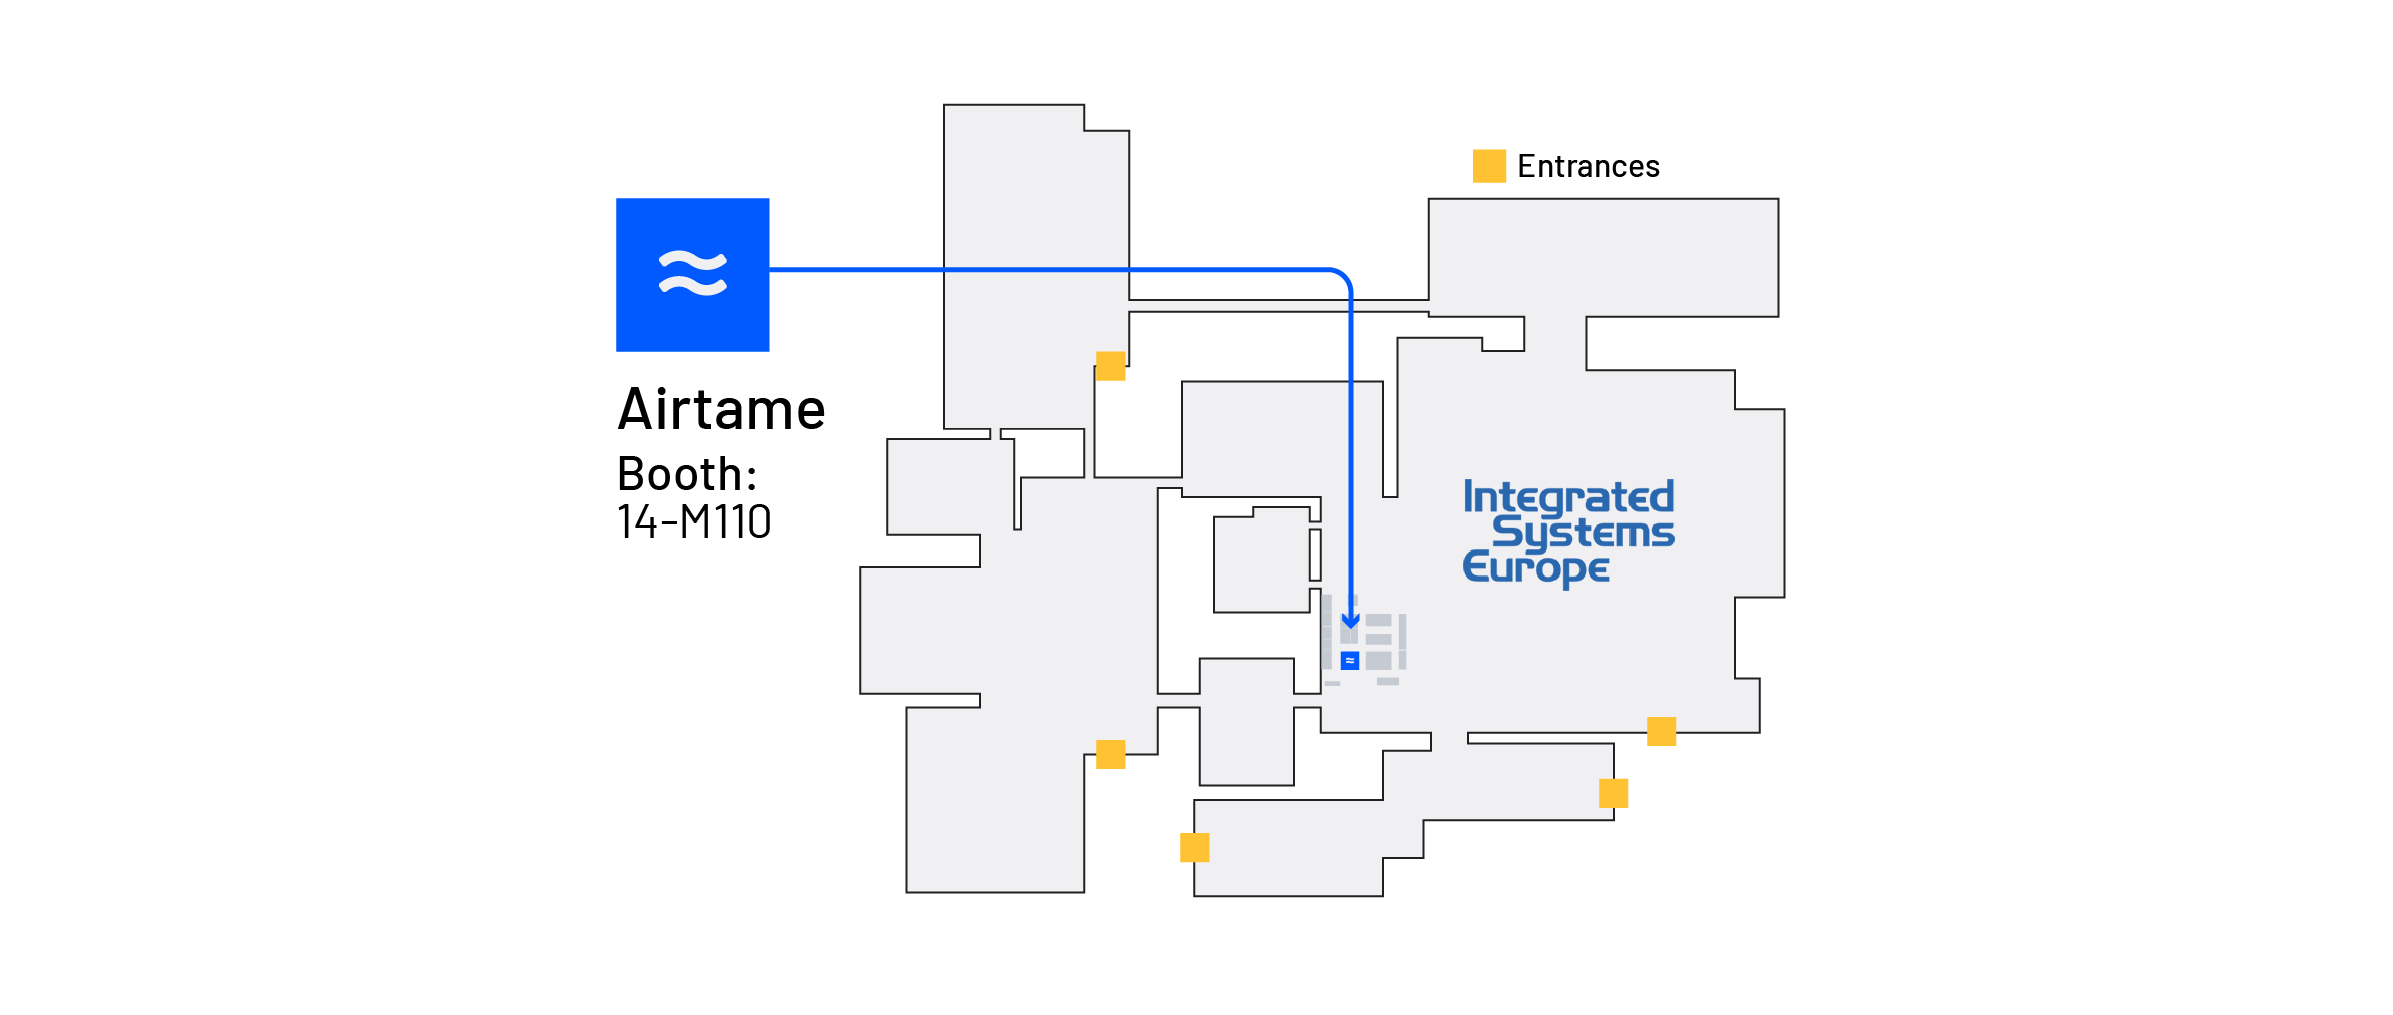 ISE floor plan showing the Airtame booth location